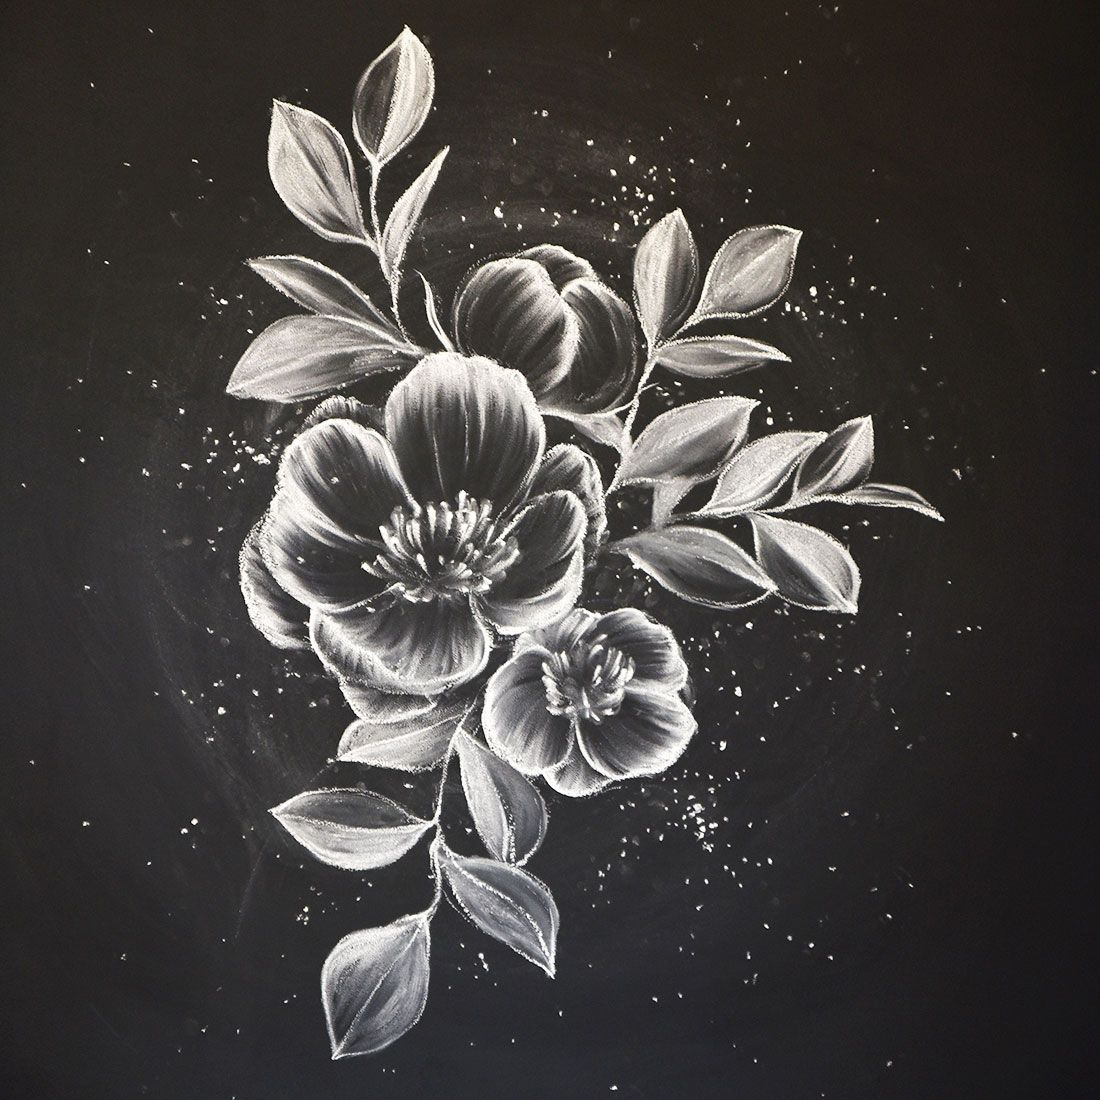 Blackboard Artwork Ideas: Time To Learn Chalk Art From An Insta-famous Social Celeb